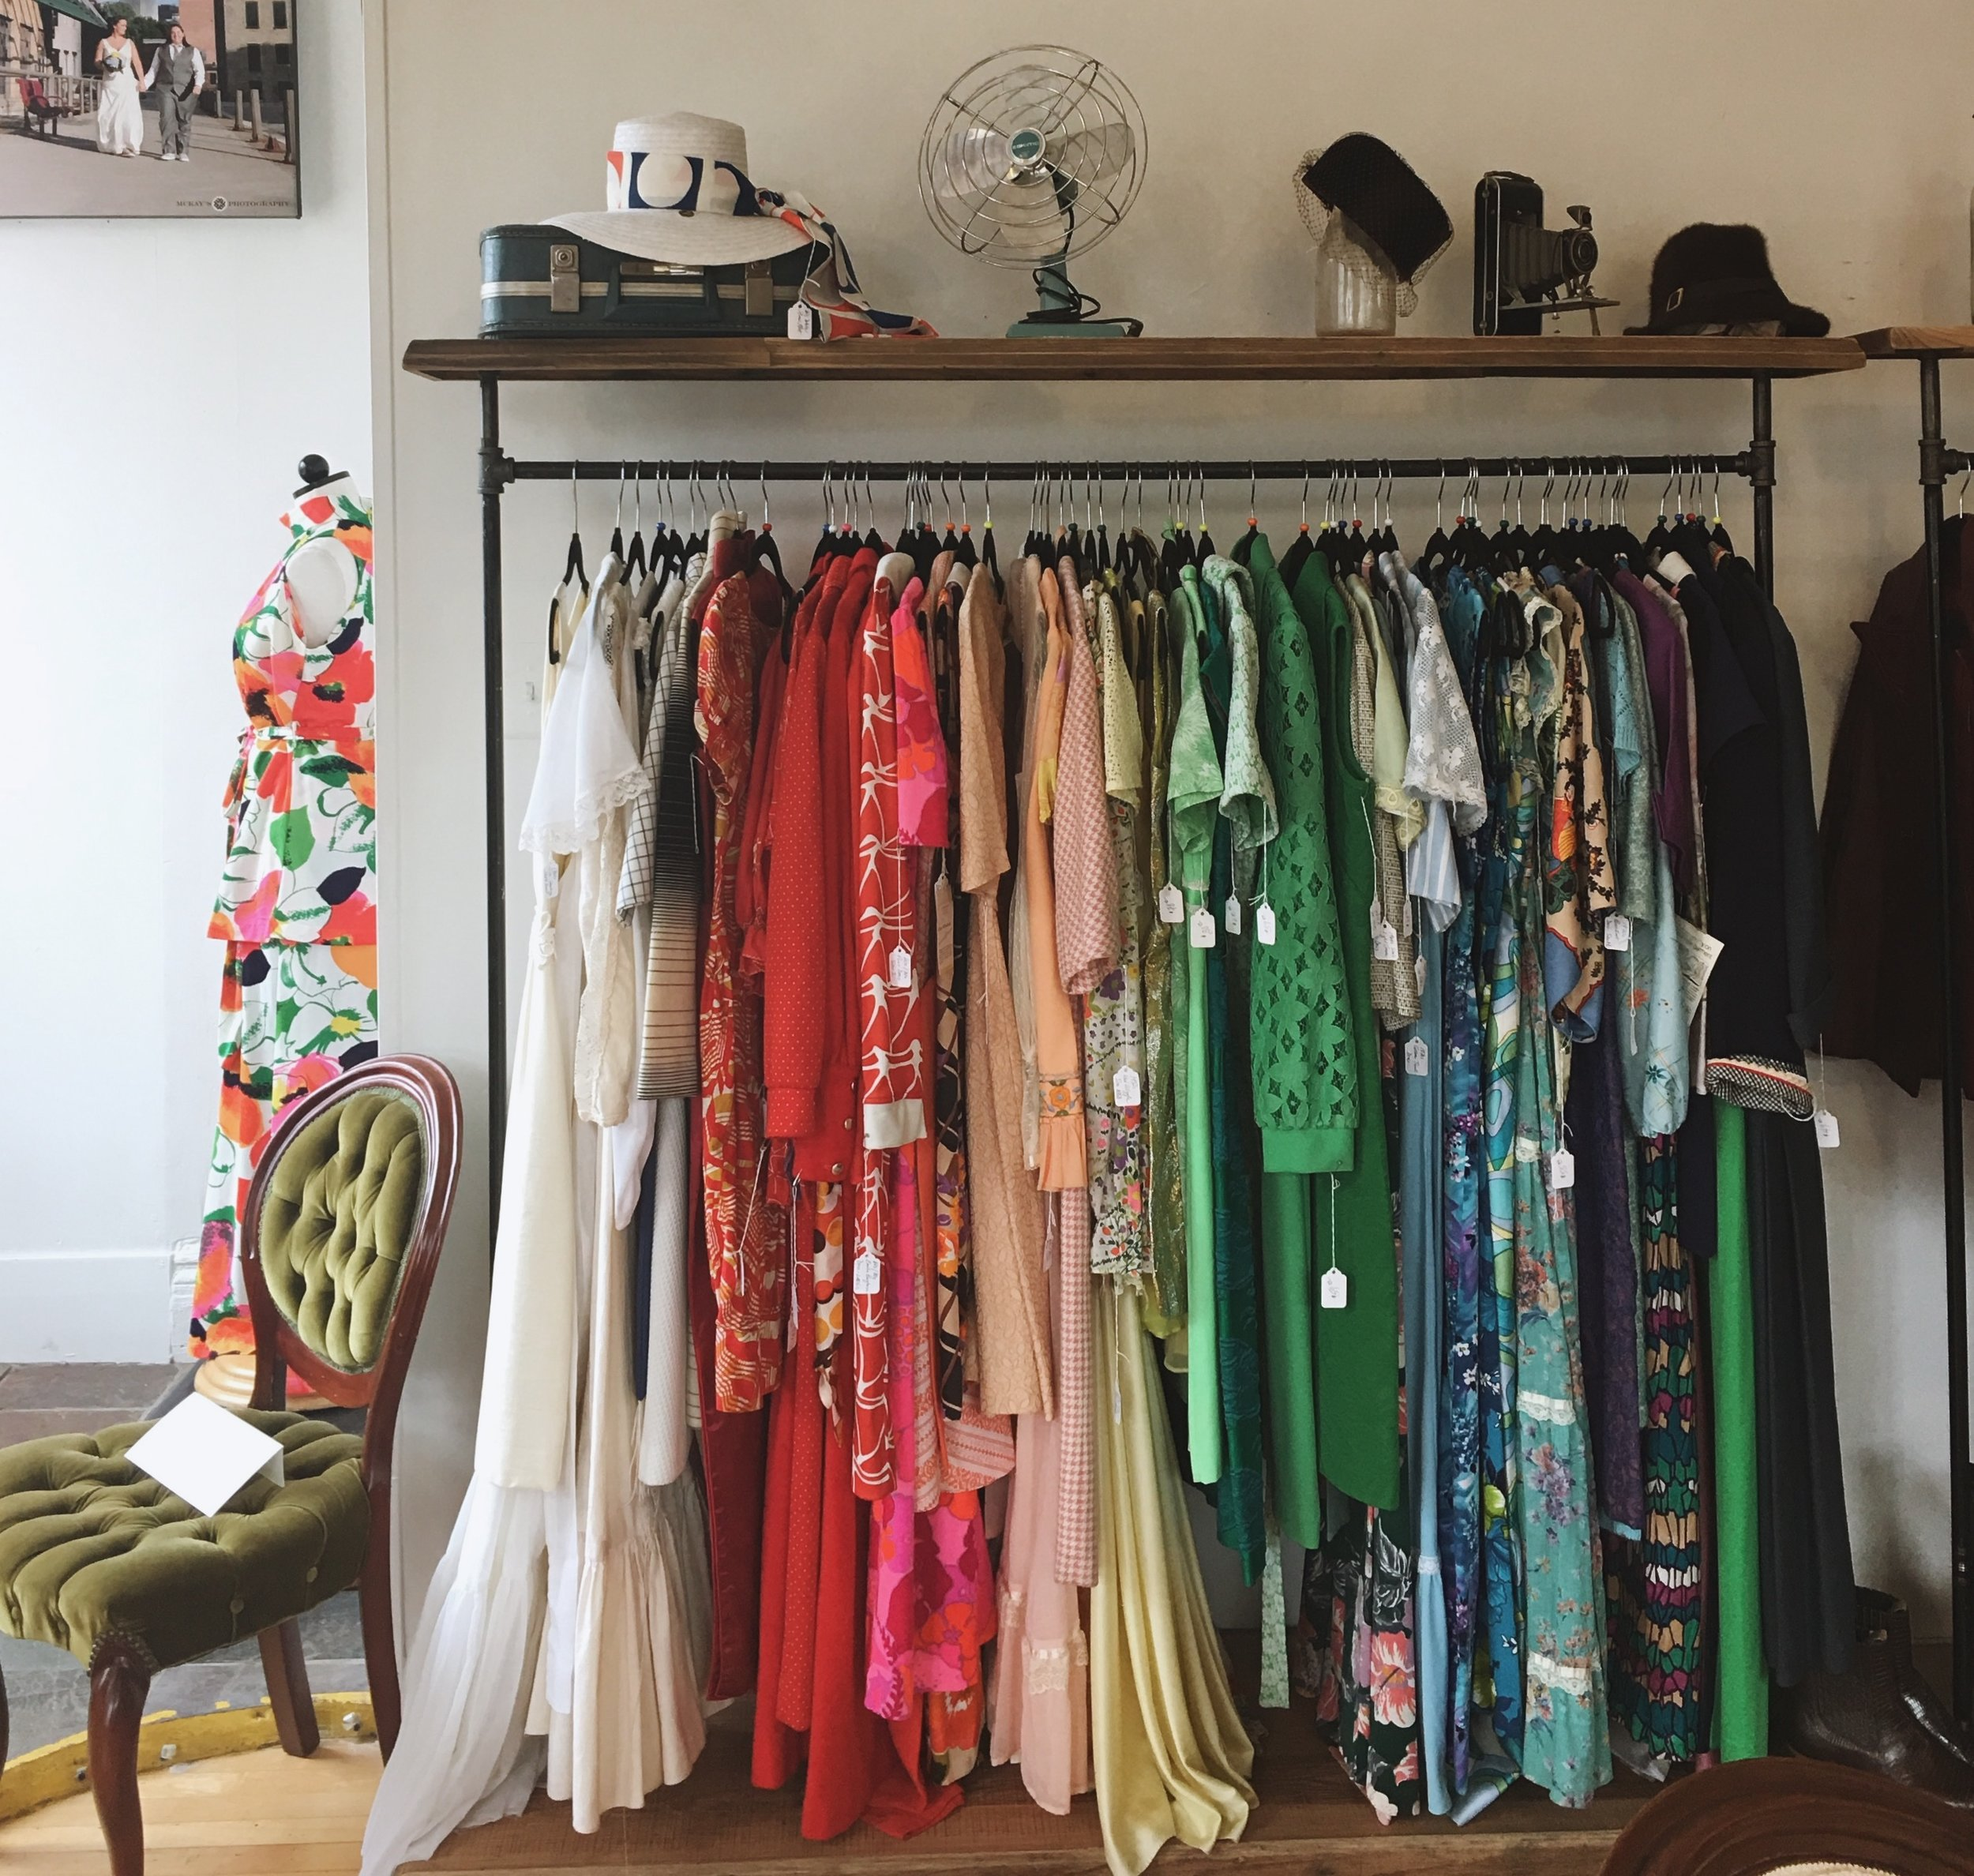 70's prints, vintage accessories, statement making home decor and all sorts of dreamy fur jackets.   Jane Vintage   is the perfect stop to find pieces with lots of character.